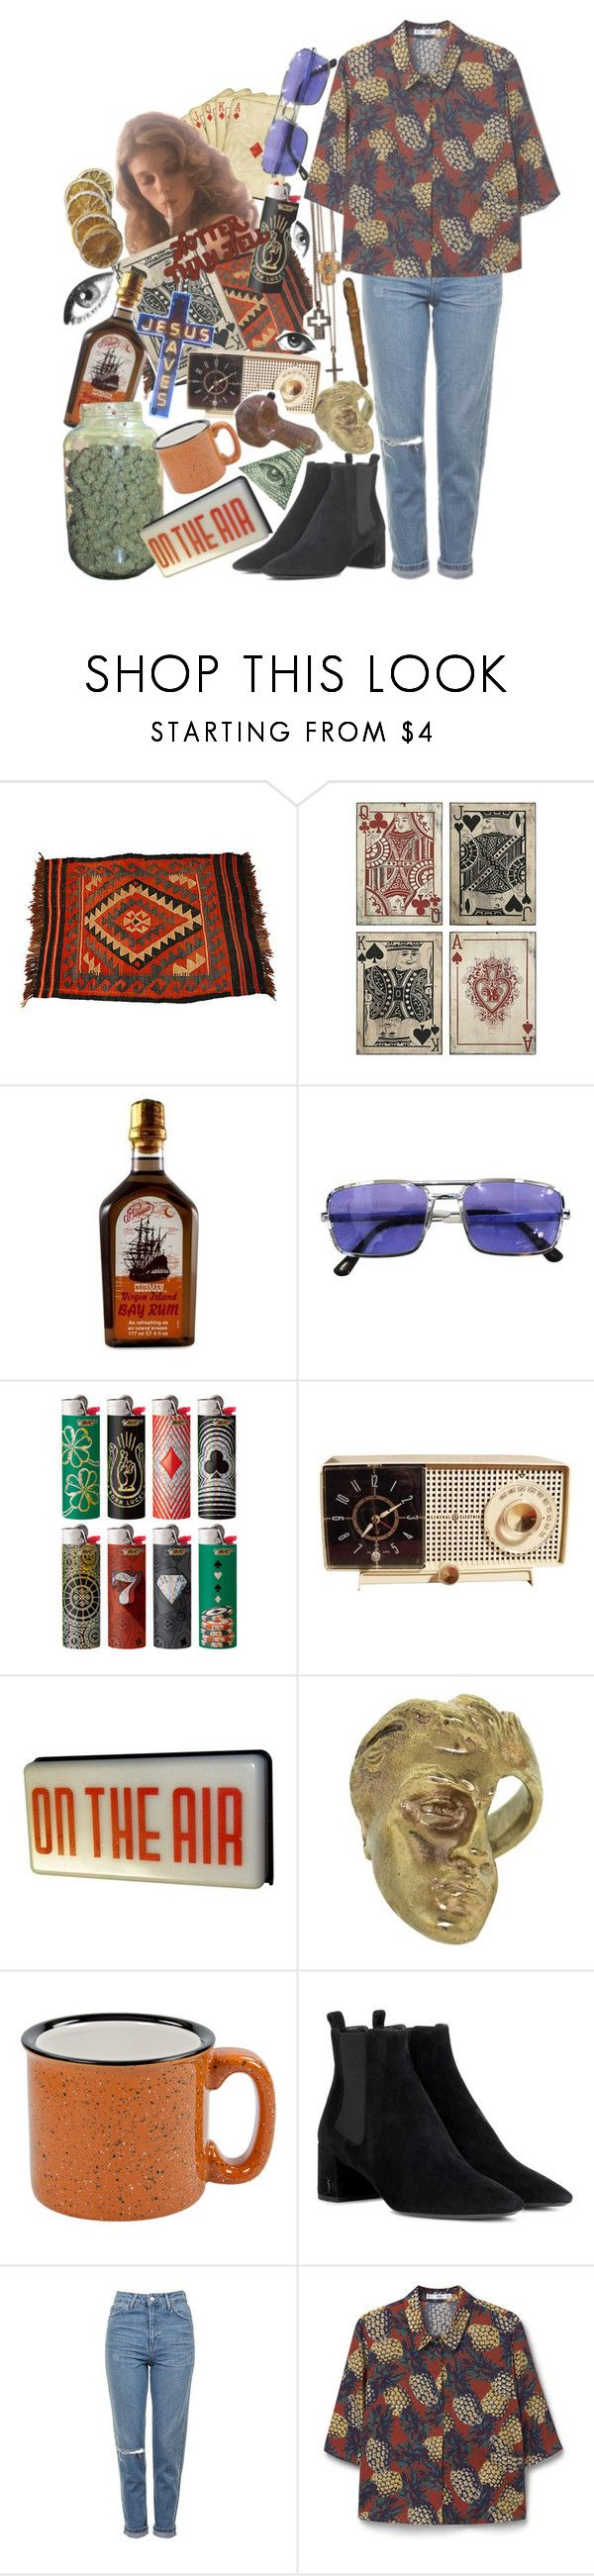 """You're Gonna Be A Star Kid"" by orange-sunshine ❤ liked on Polyvore featuring Universal Lighting and Decor, Pinaud, Yunus & Eliza, Yves Saint Laurent, Topshop and MANGO"